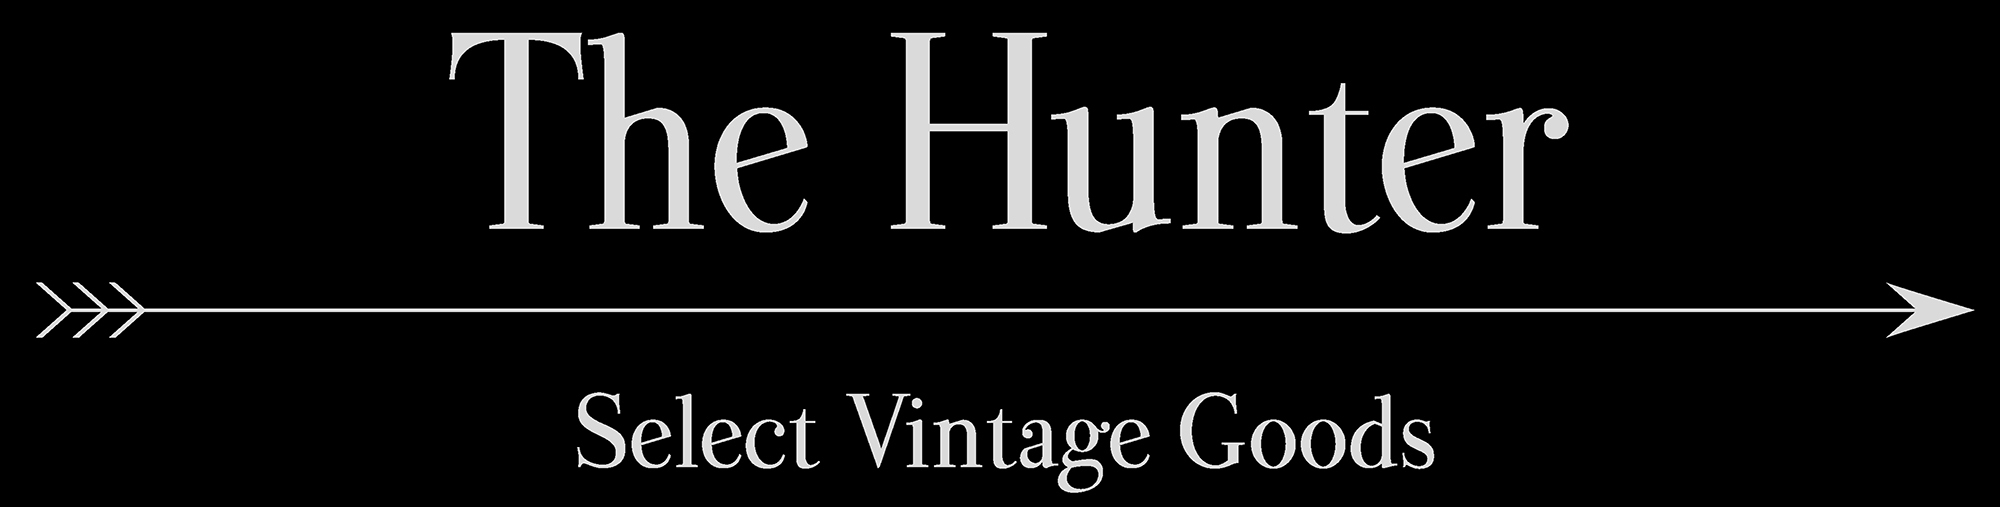 The Hunter - Select Vintage Goods